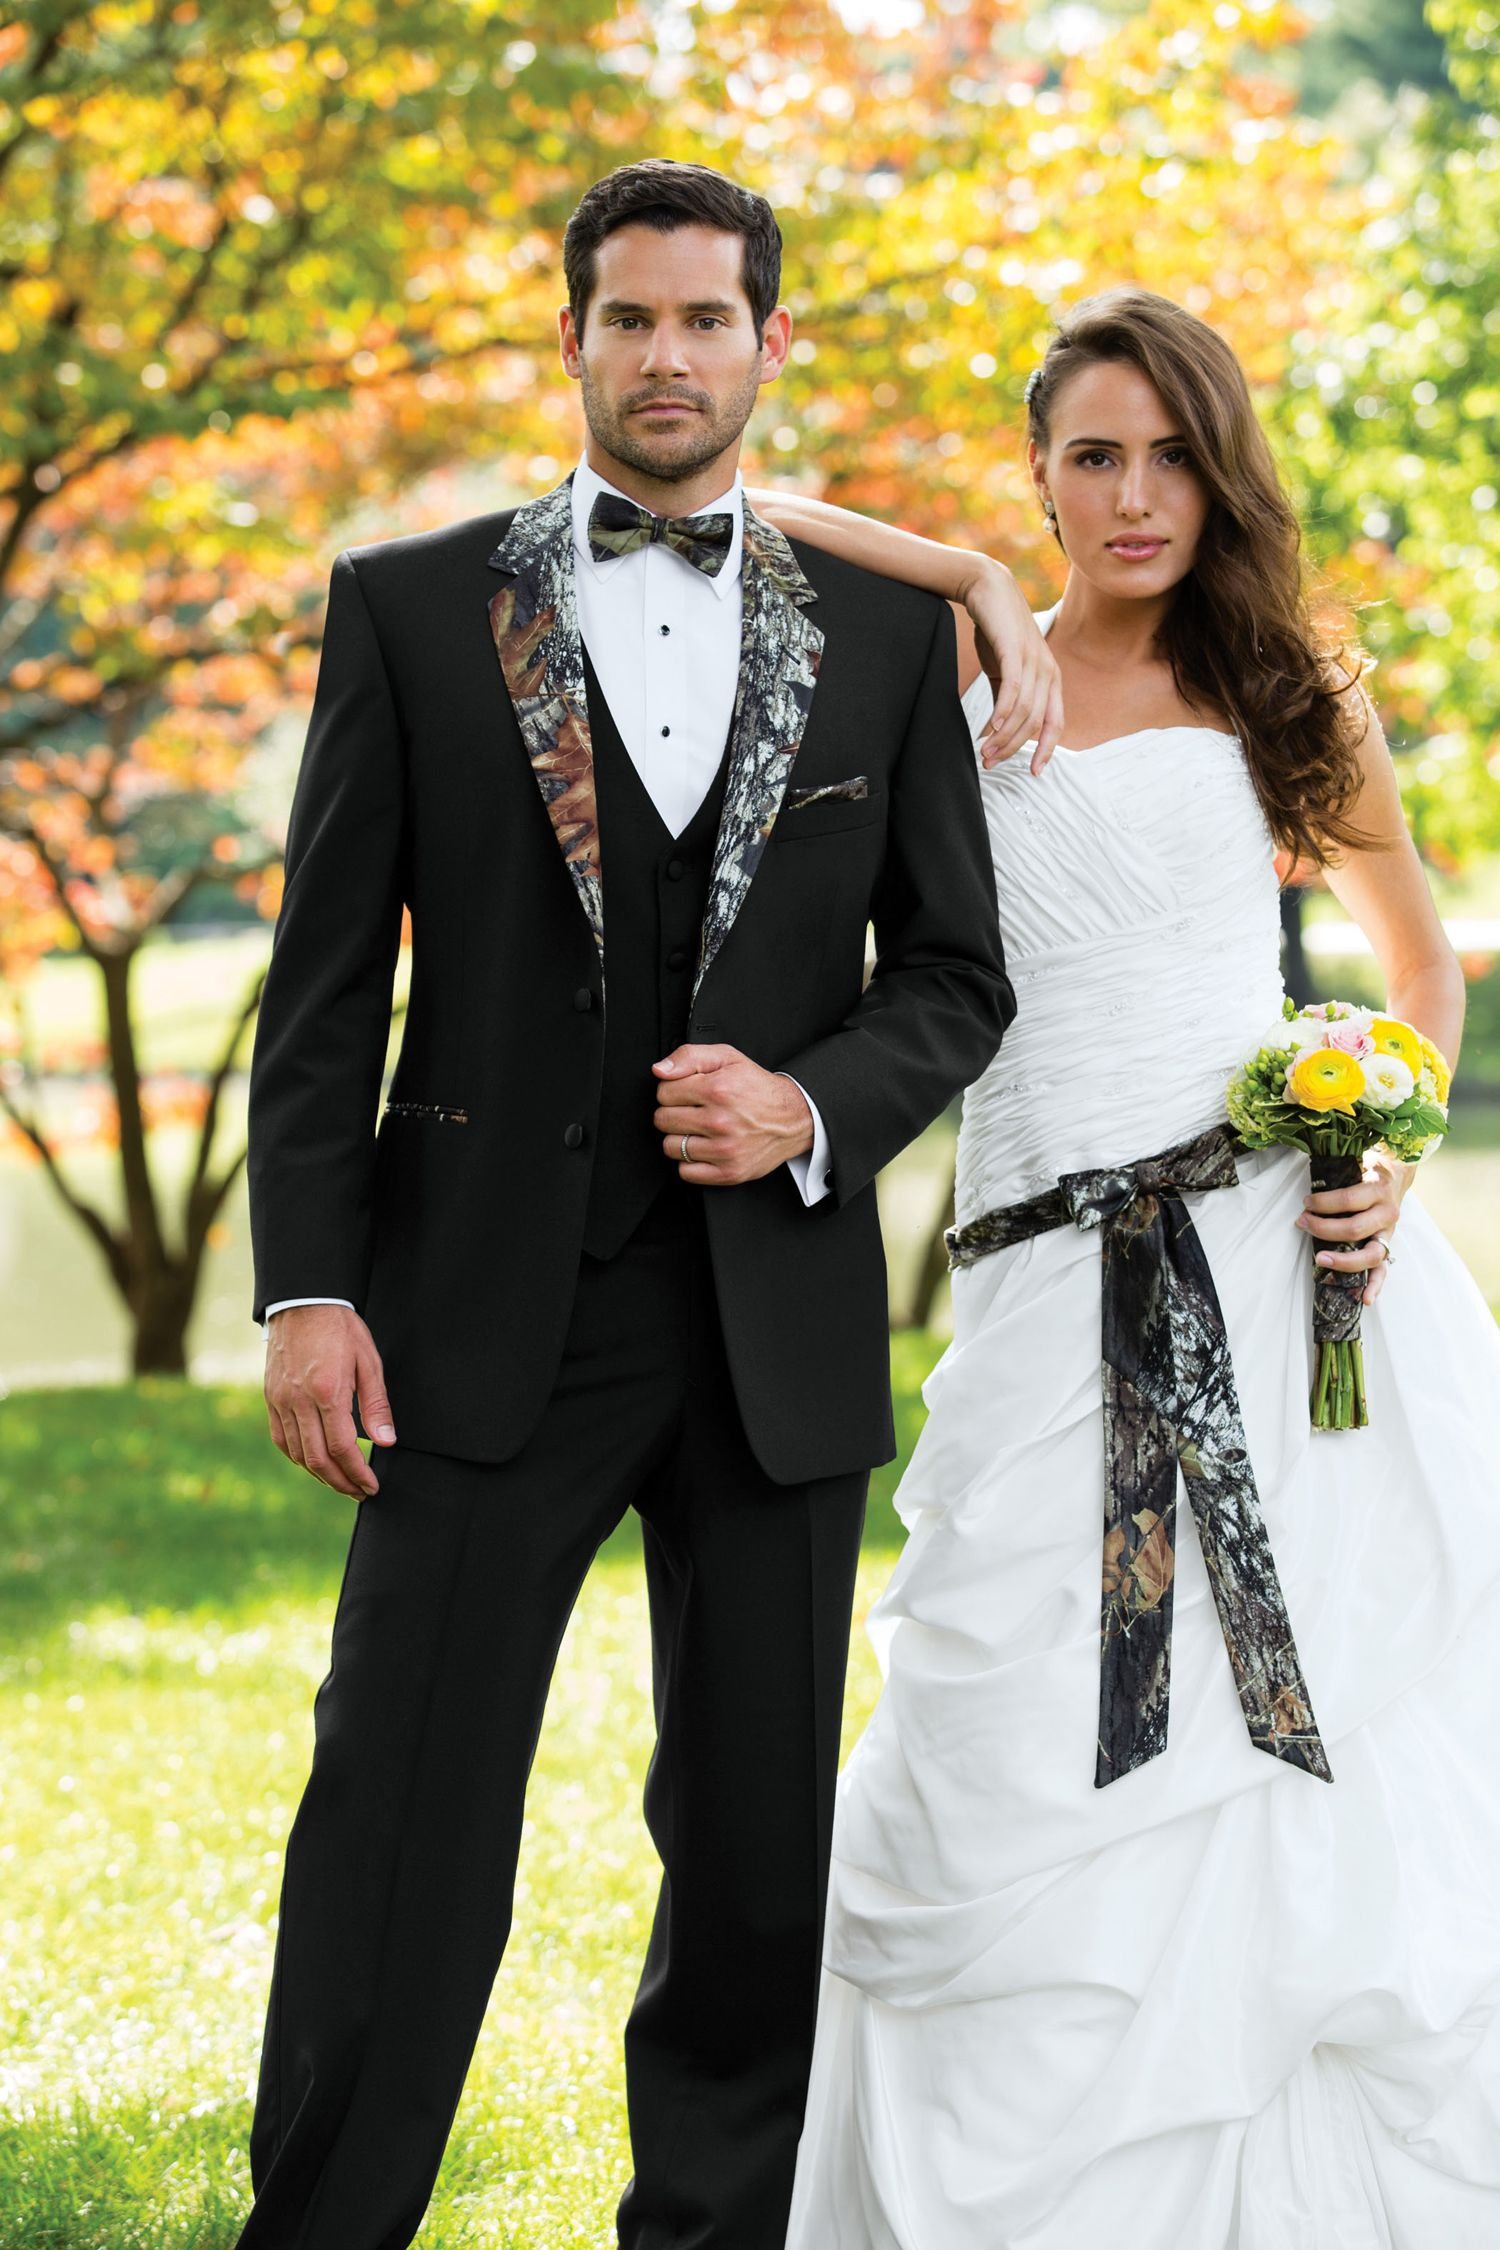 white camo wedding dress Camo isn t always meant to blend in Be an individual in our Camouflage Tuxedo Tailored in worsted wool with a camouflage notch lapel and top collar